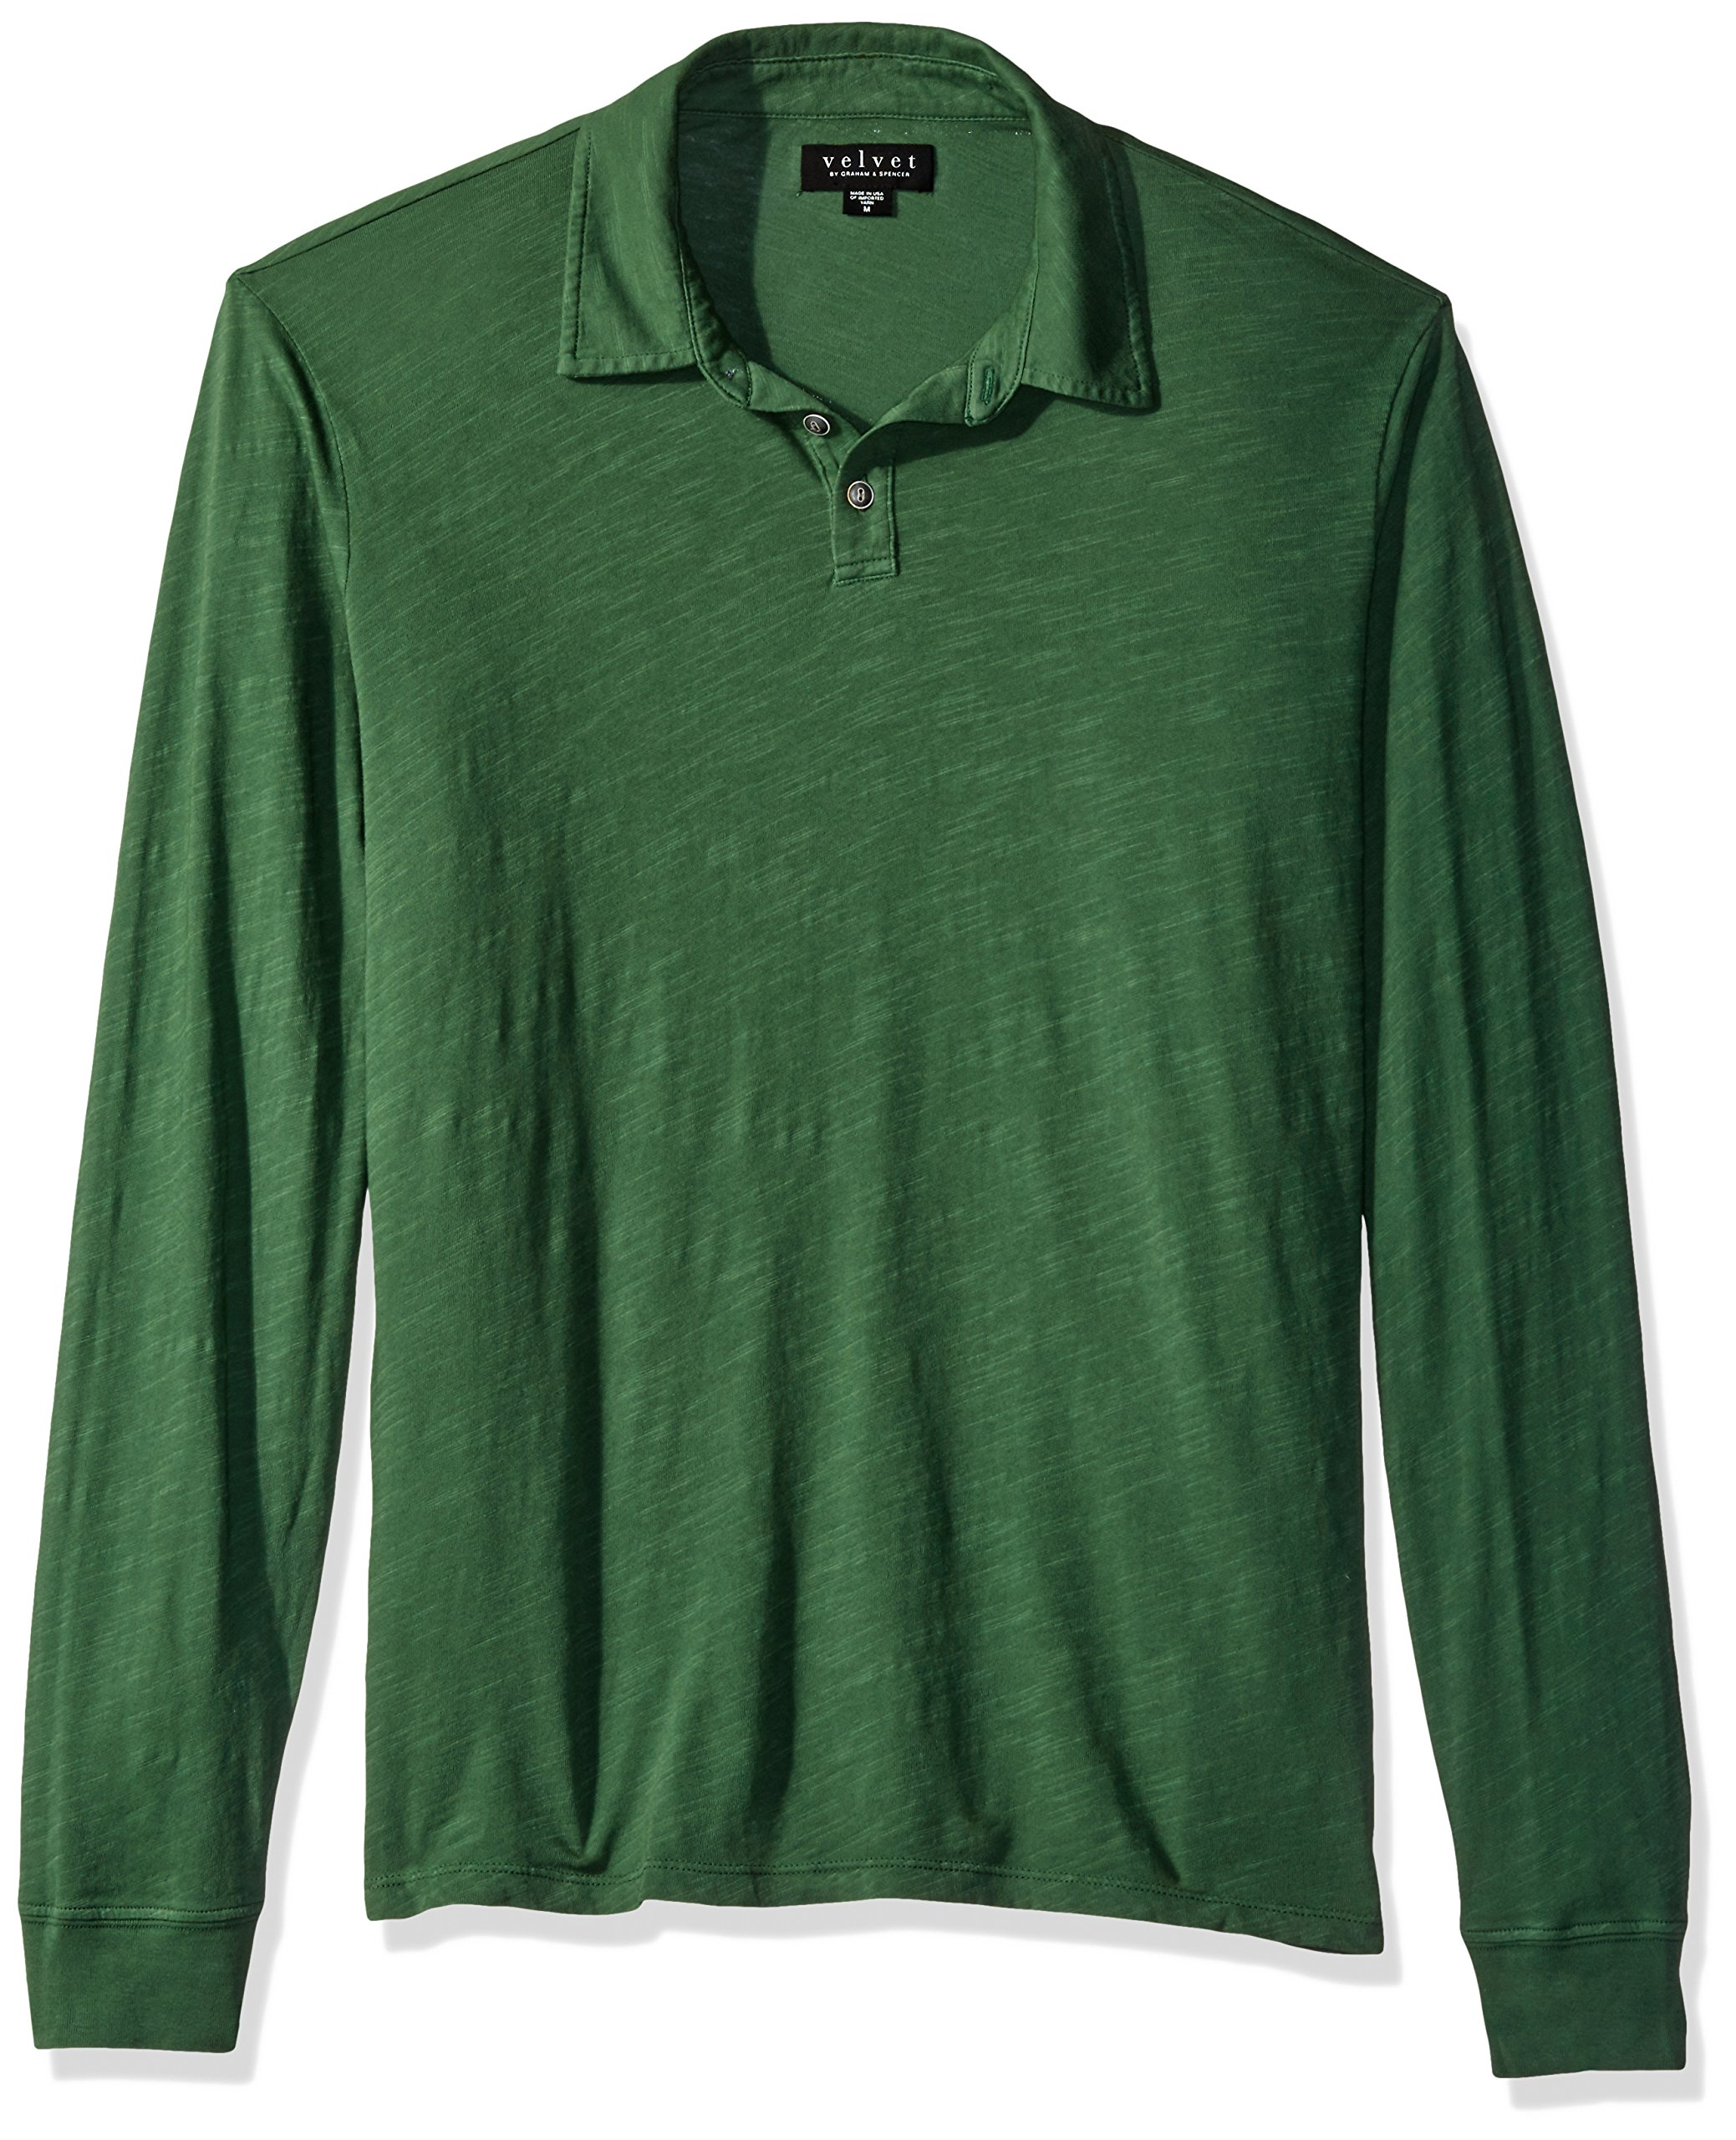 VELVET BY GRAHAM & SPENCER Men's Tyson Long Sleeve Polo Shirt in Cotton Slub, Garden, XX-Large